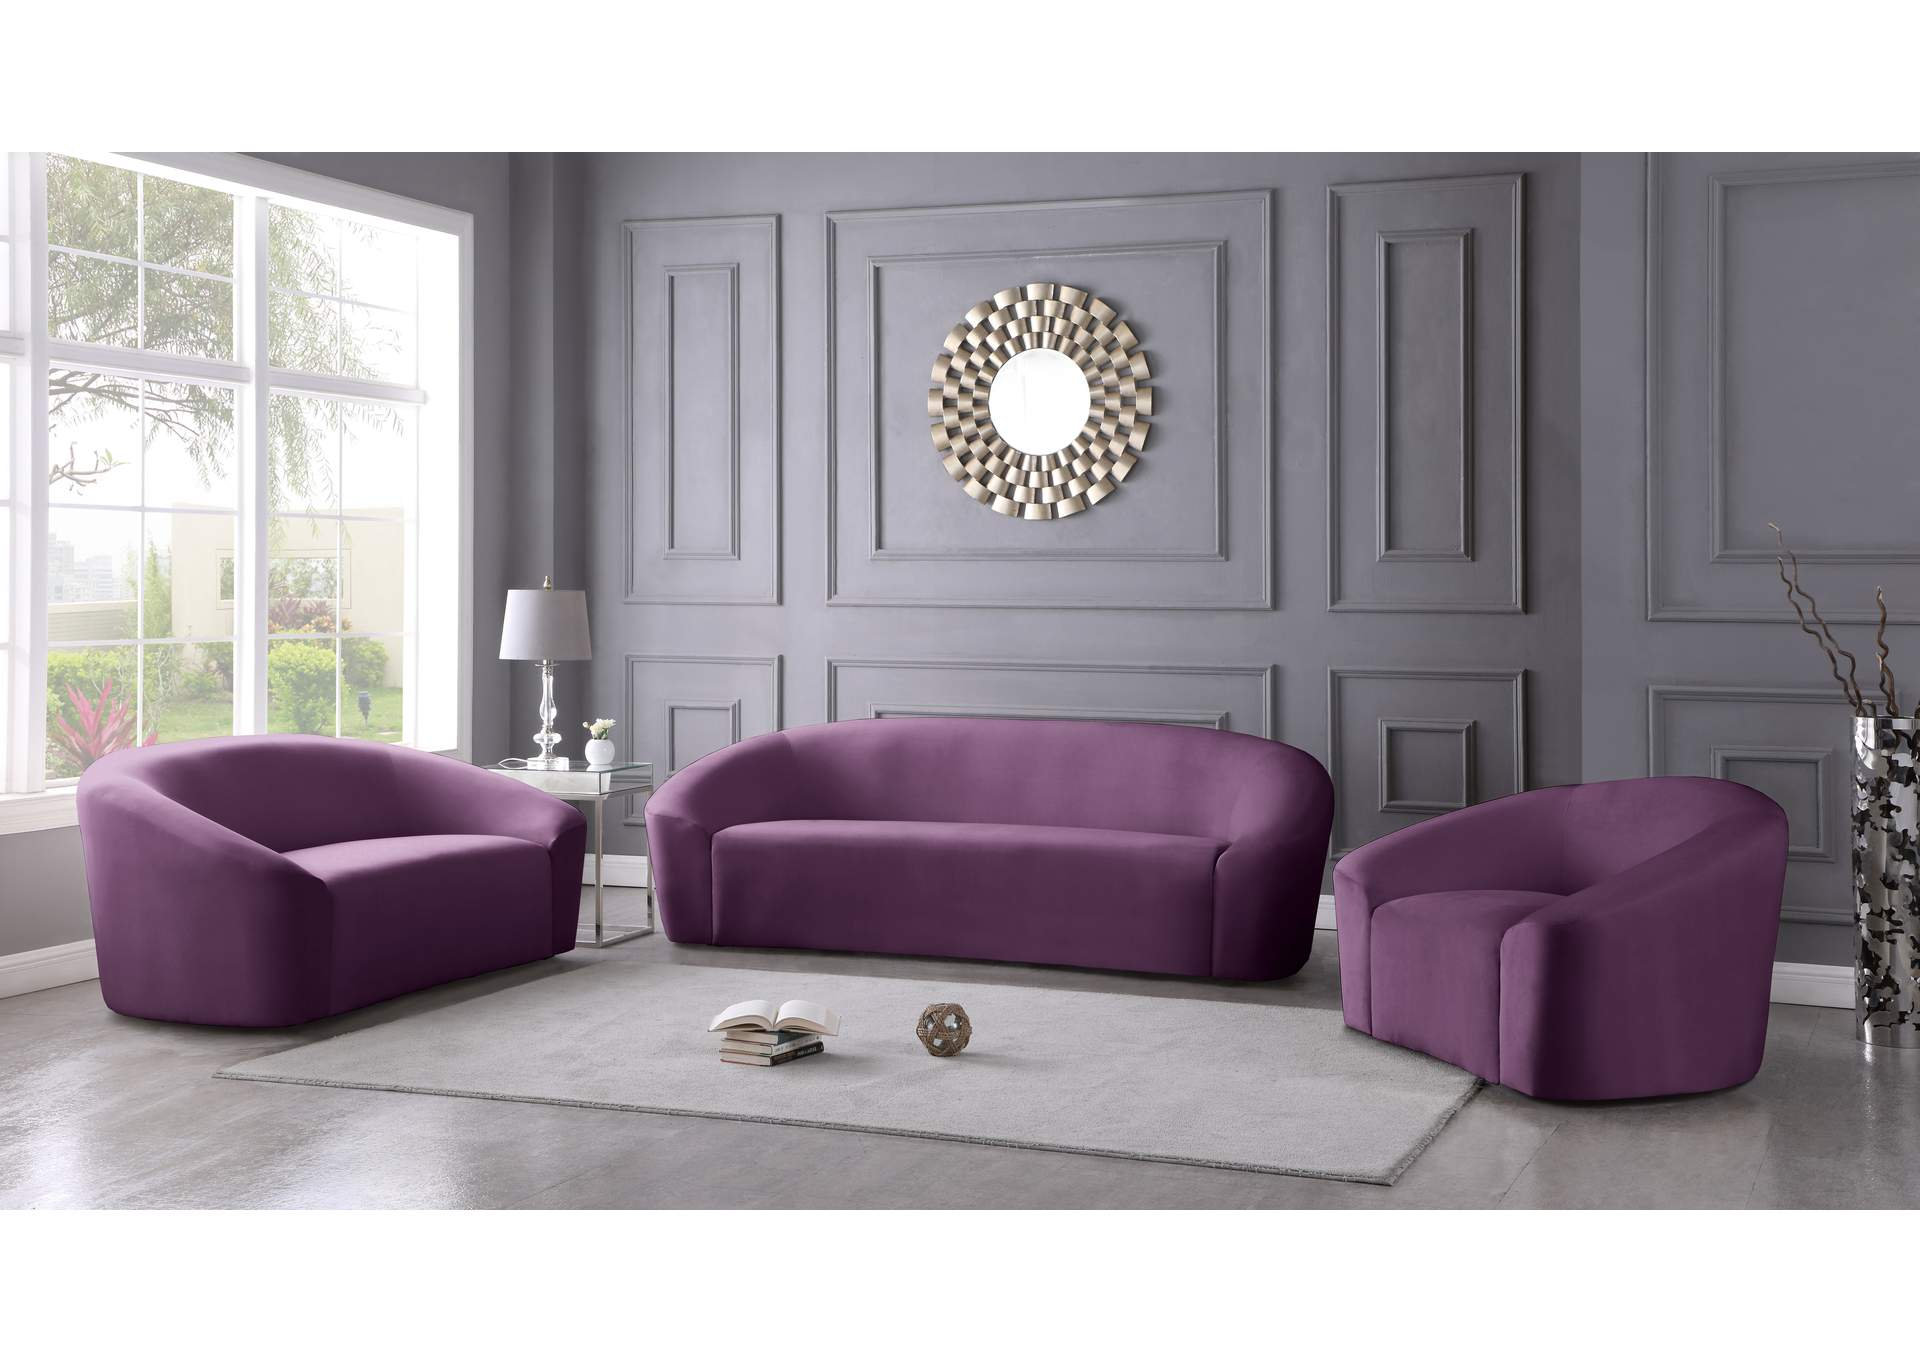 Riley Purple Velvet Sofa,Meridian Furniture